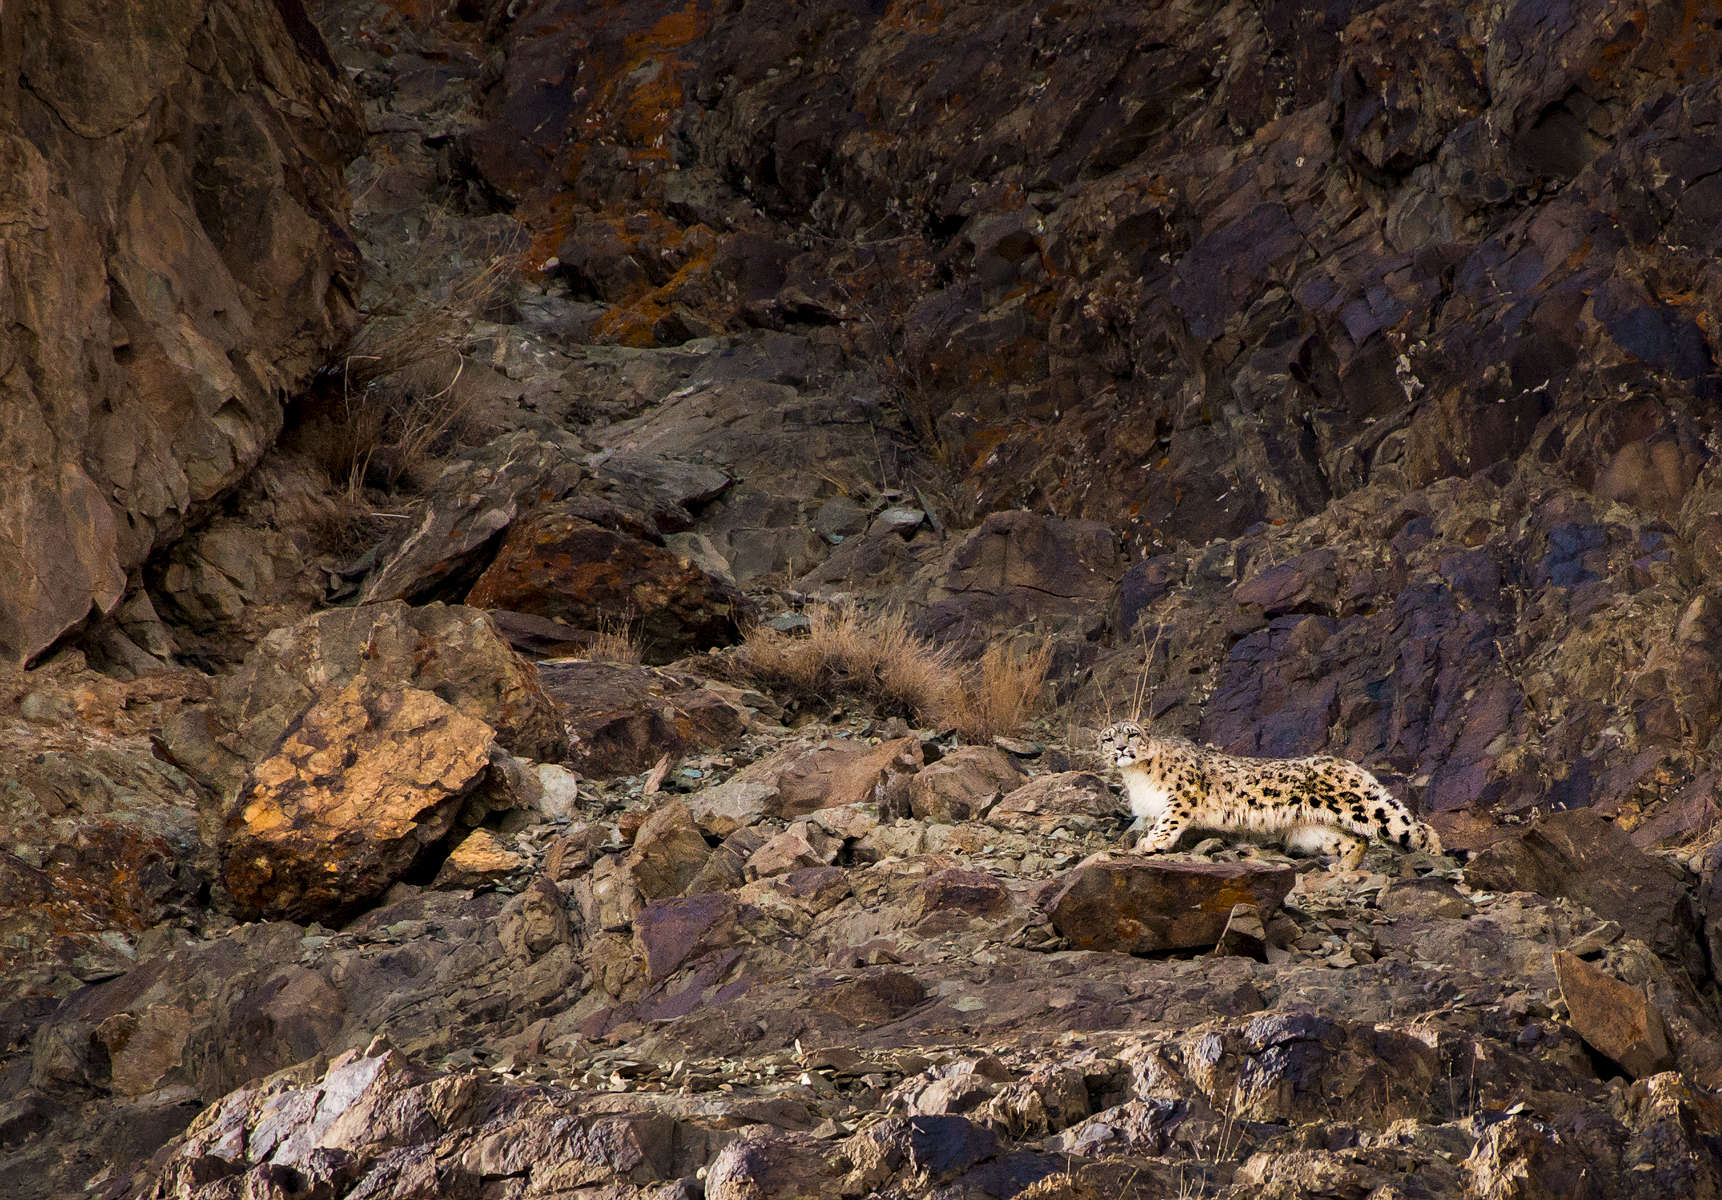 A snow leopard (Panthera uncia) in Hemis NP